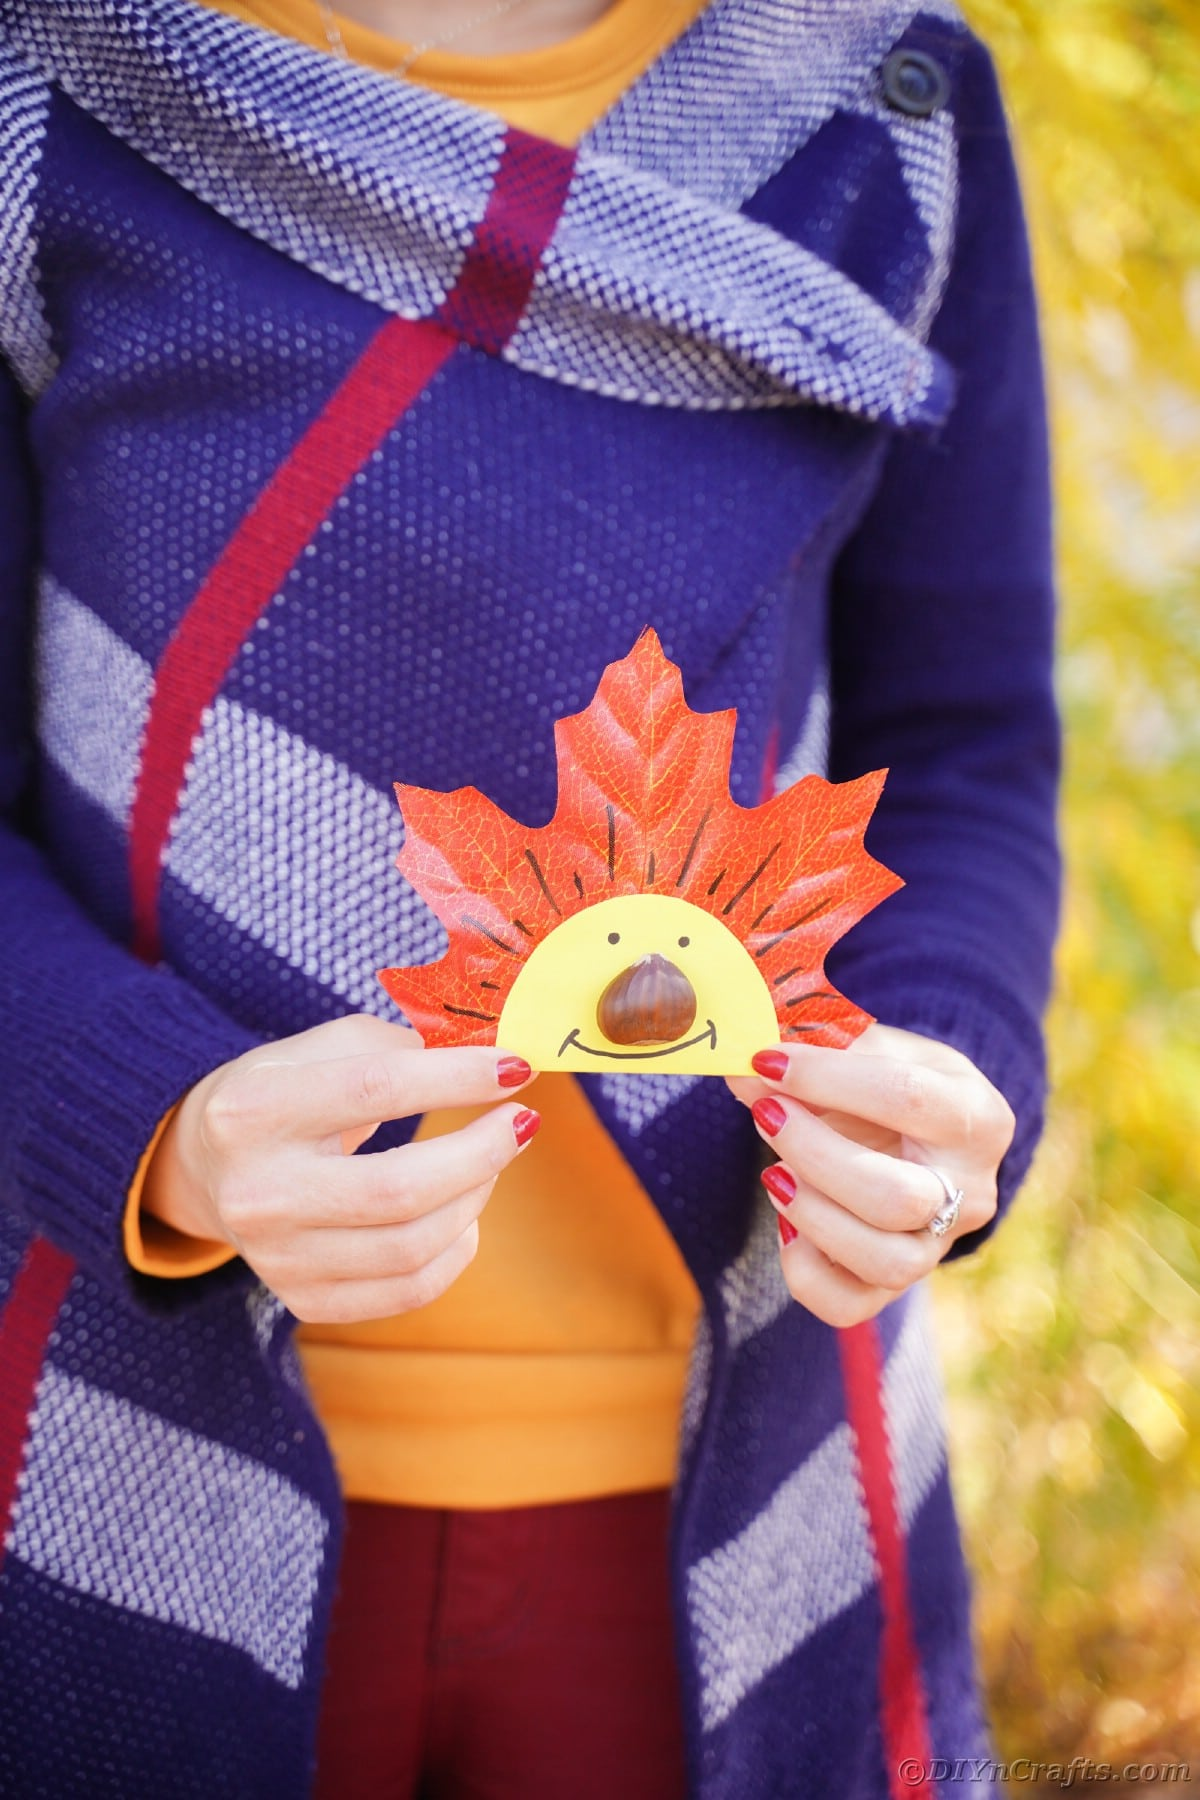 Woman in blue sweater holding fake leaf with smiling face